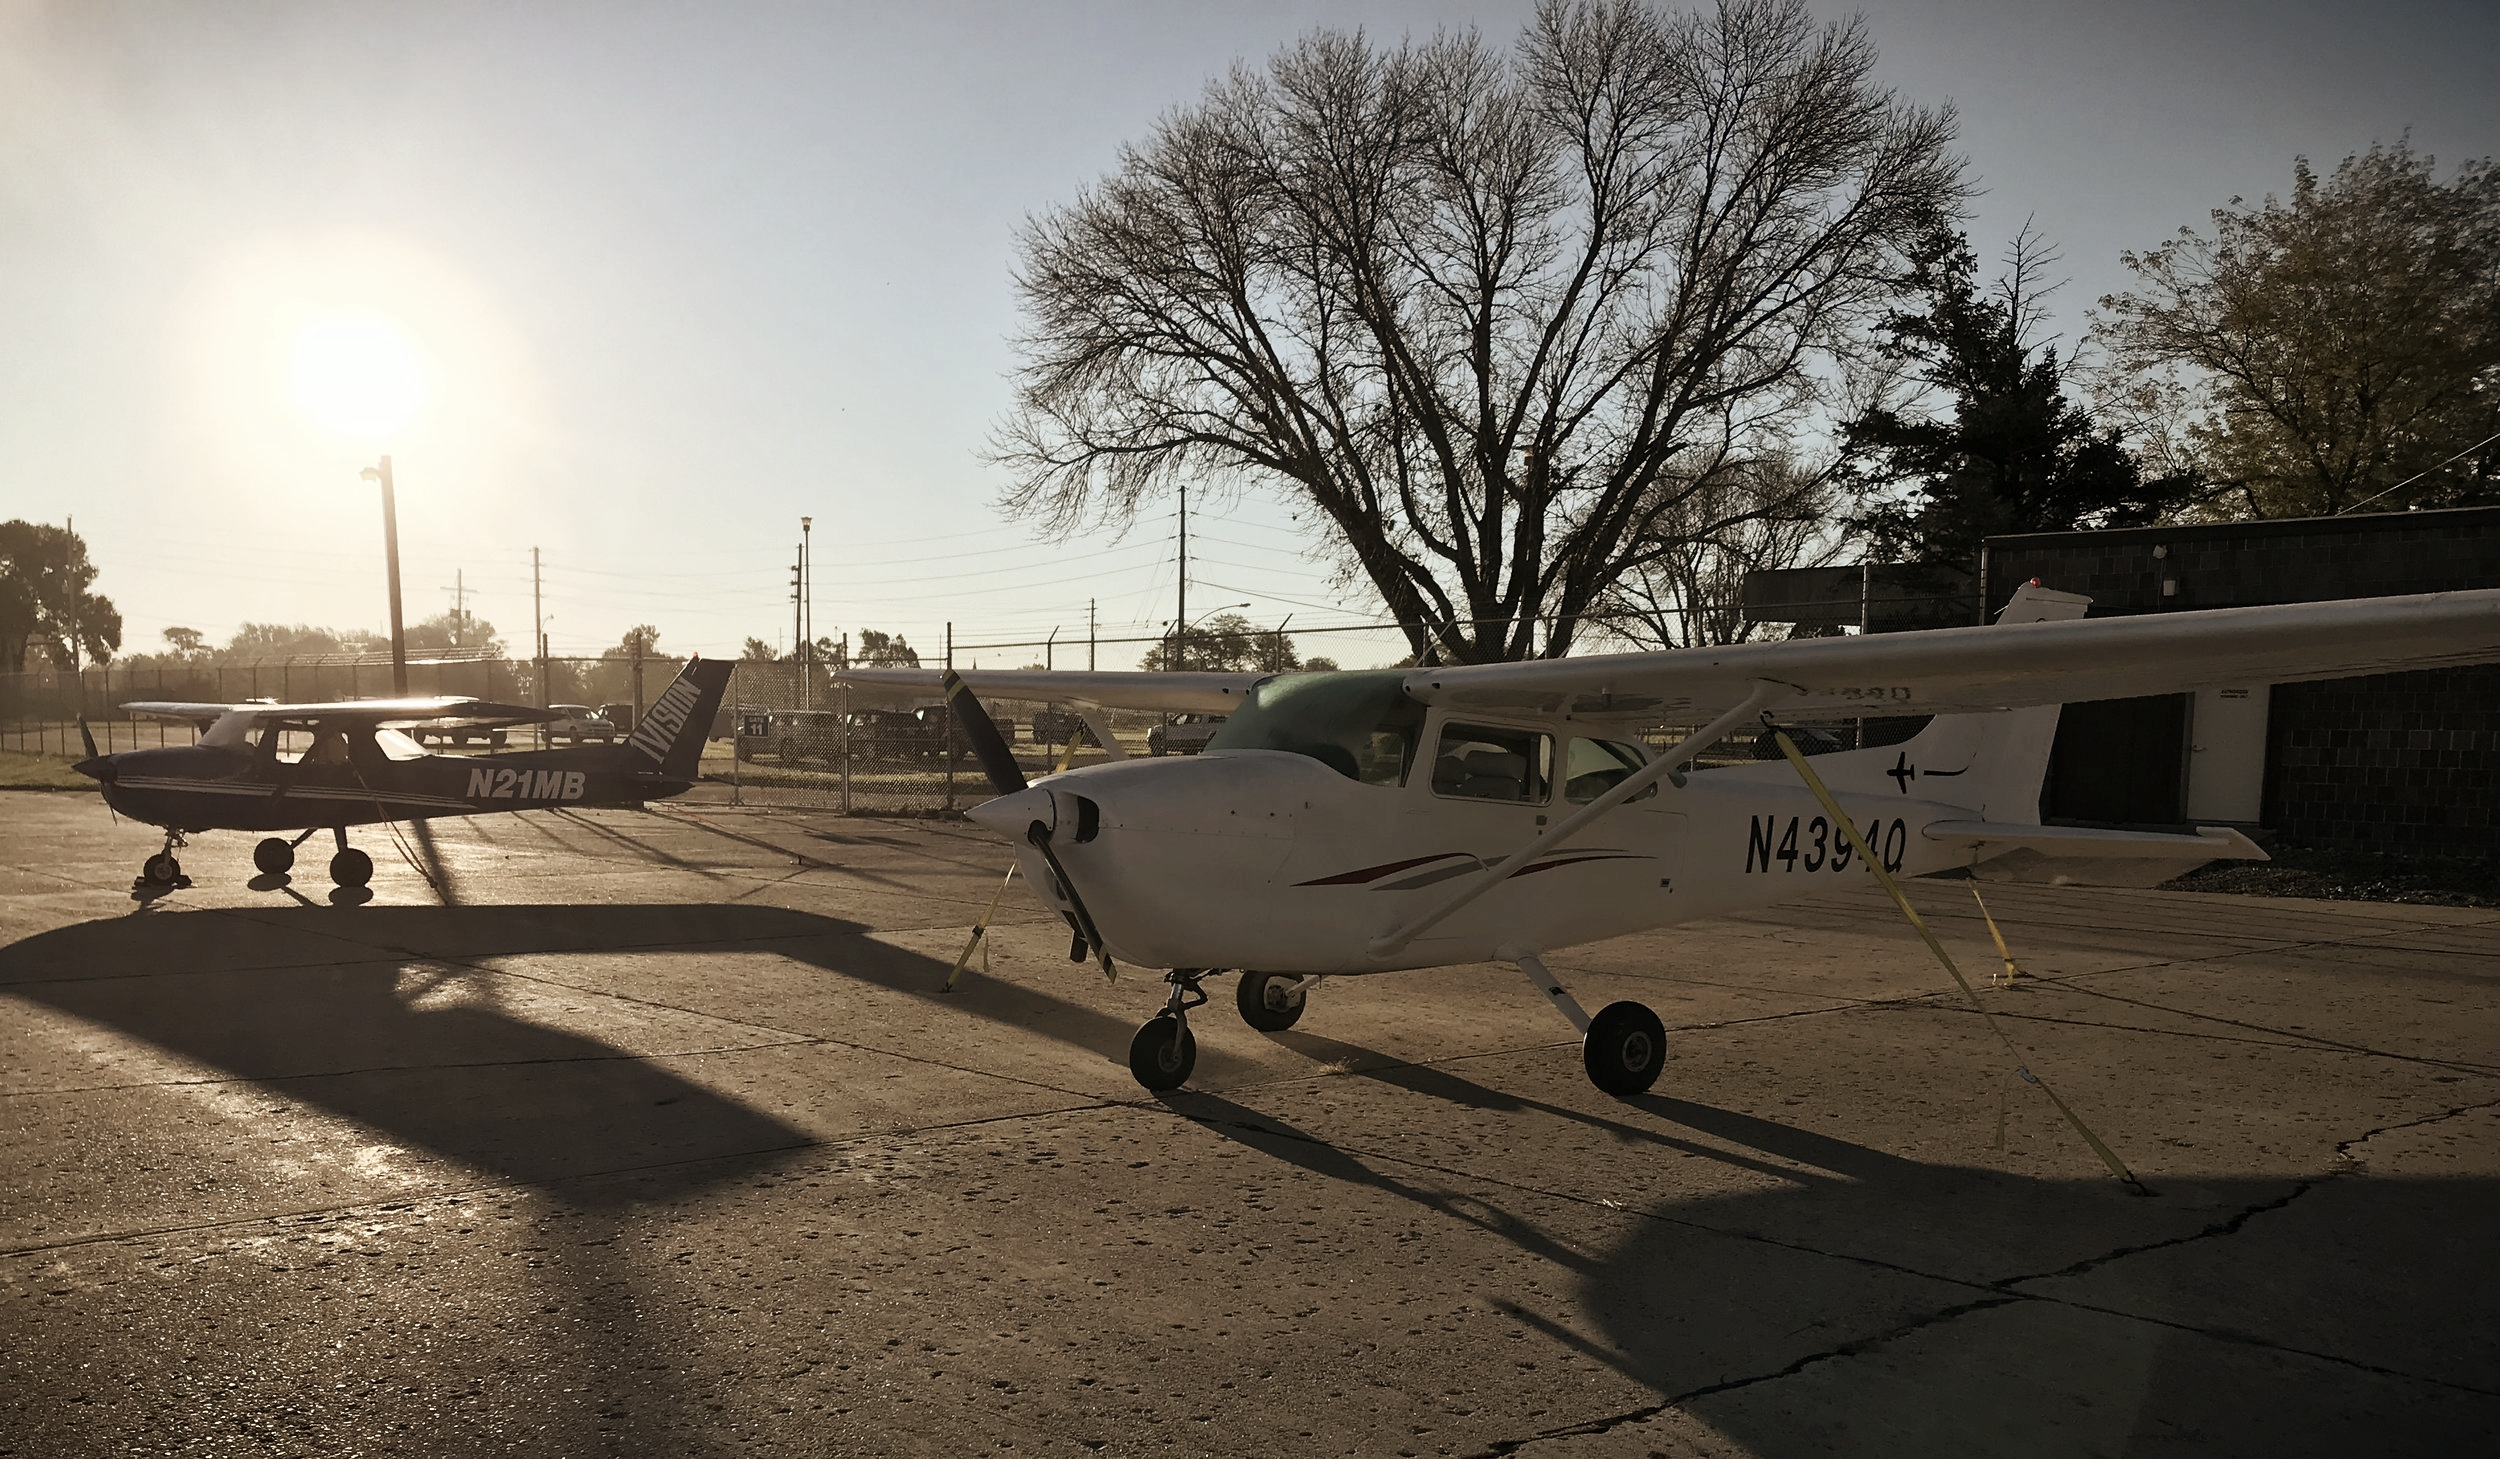 Aircraft Rental & Rates - Whether you need an aircraft for instruction, proficiency or fun, we have excellent planes for your use.